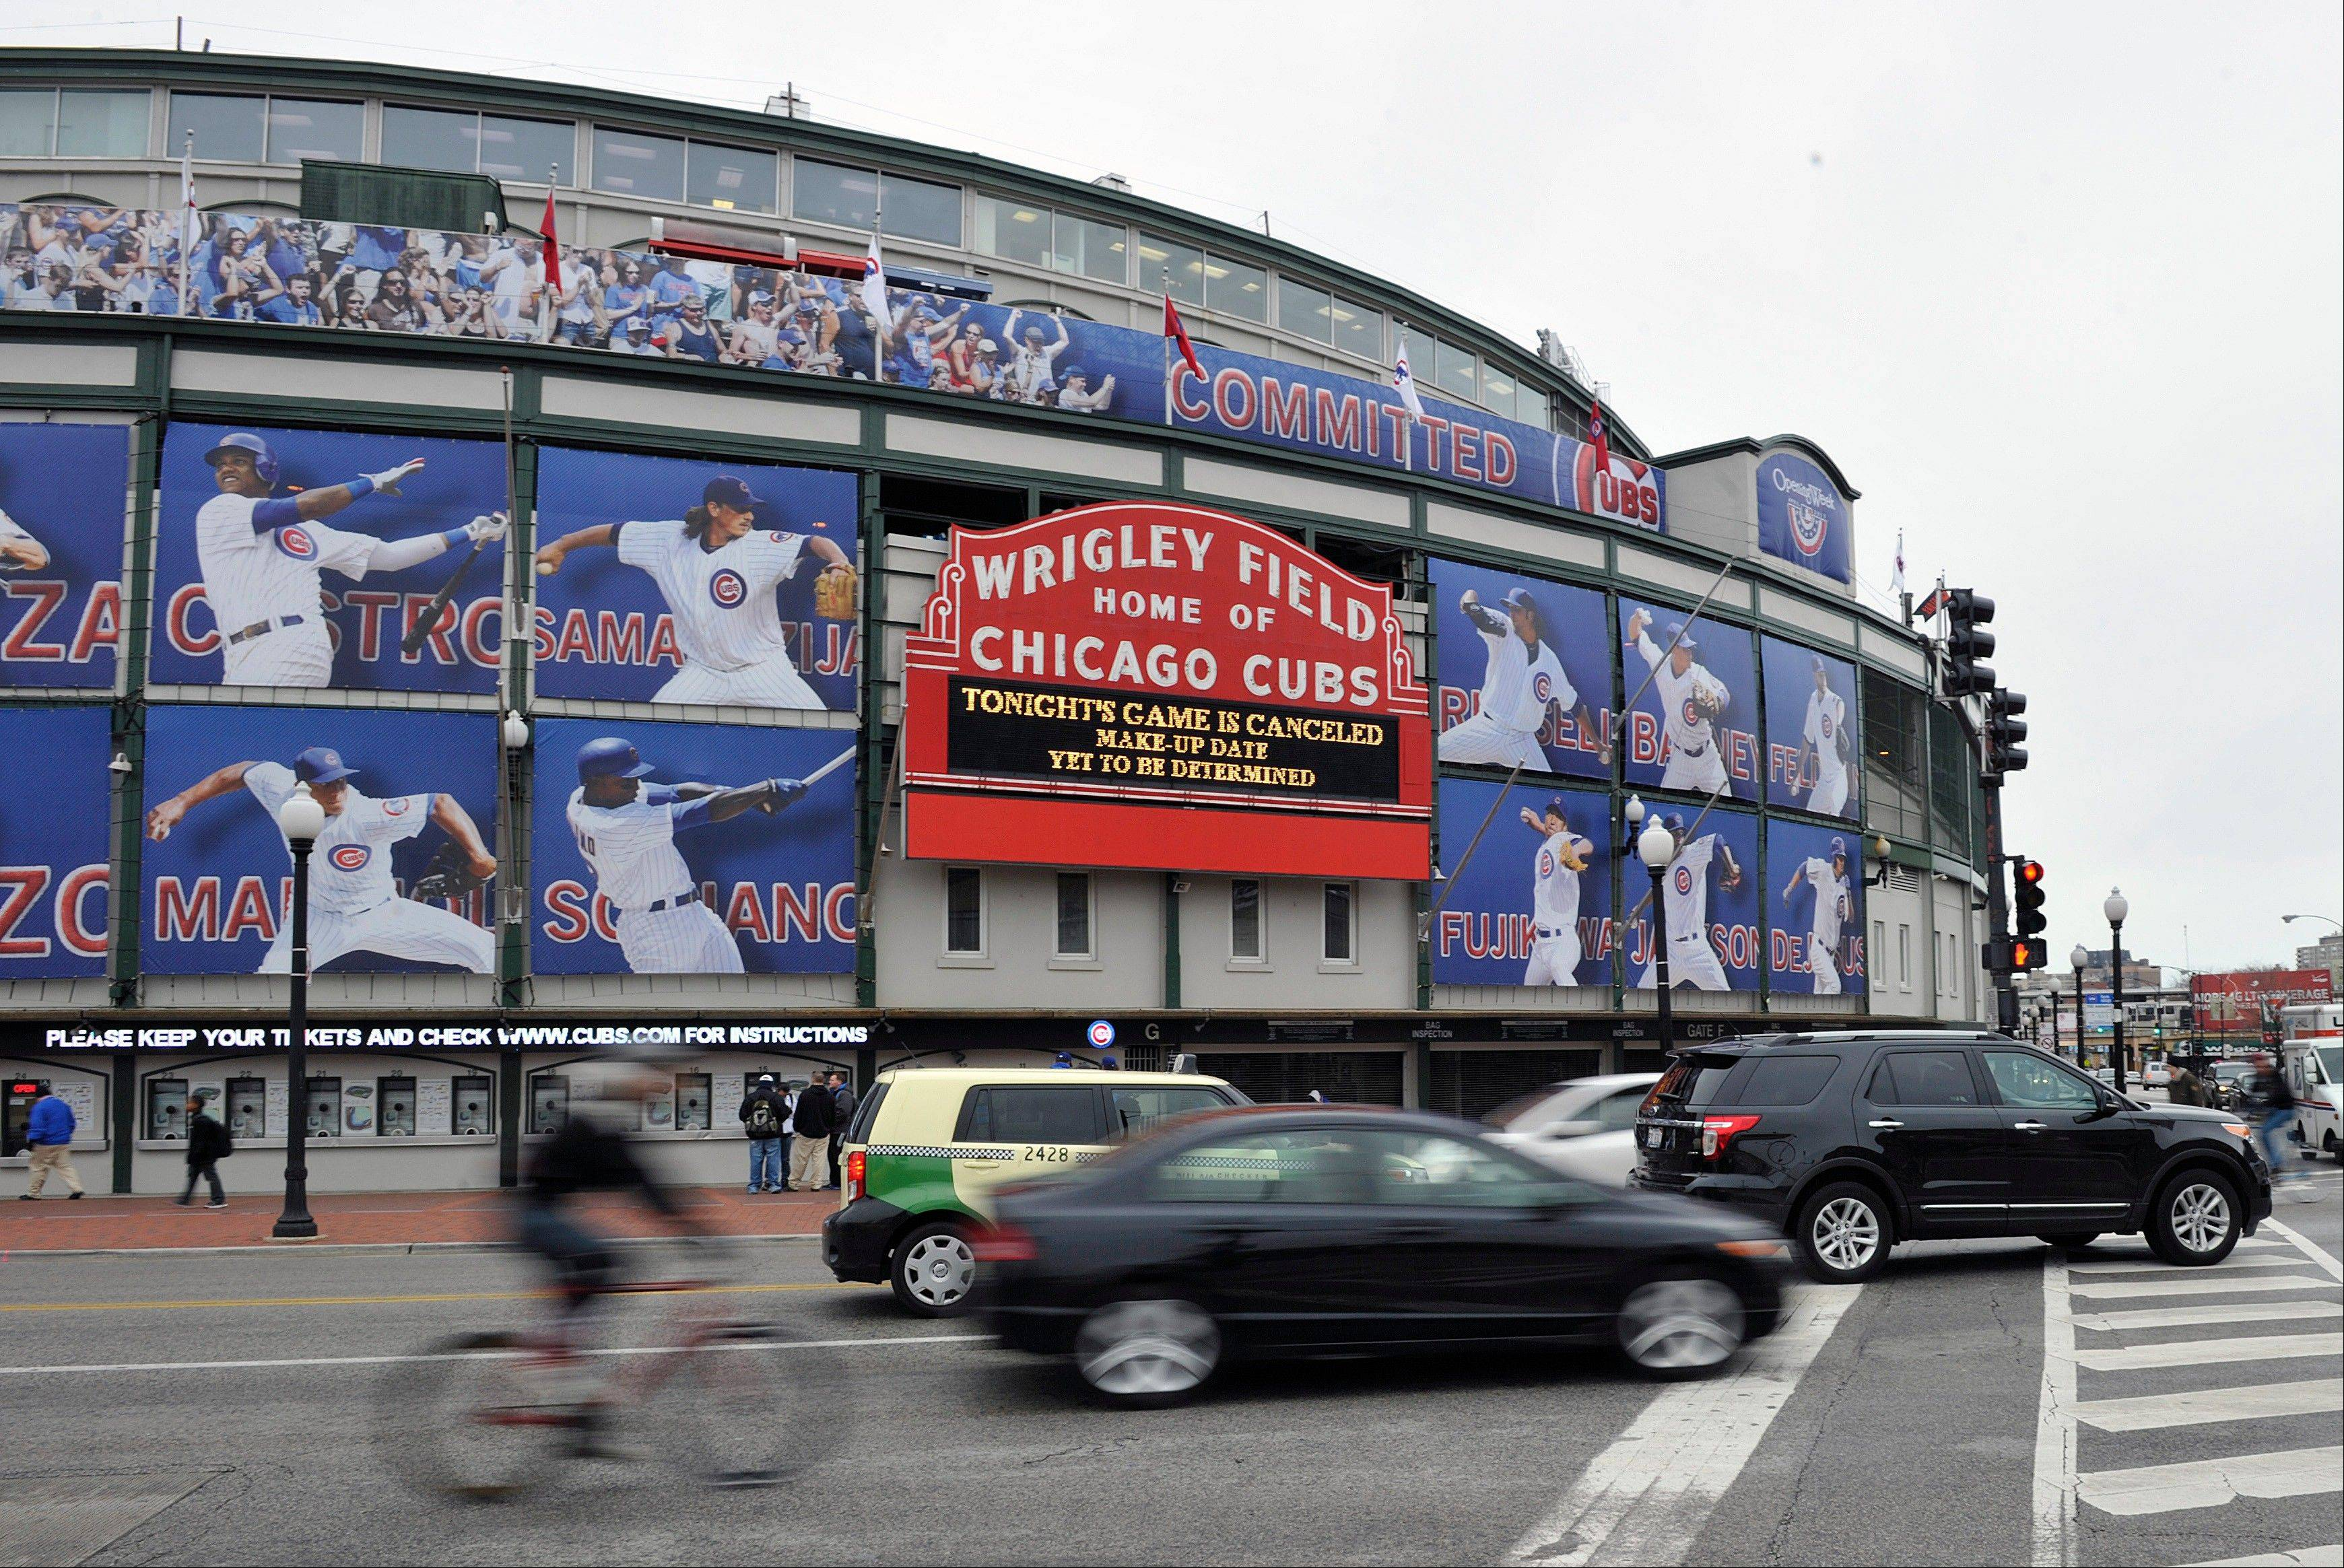 The Chicago Cubs and the city of Chicago announced Sunday night they have finalized a $500 million pact to overhaul Wrigley Field. The deal includes $300 million in renovations and will allow more night games and expand parking.